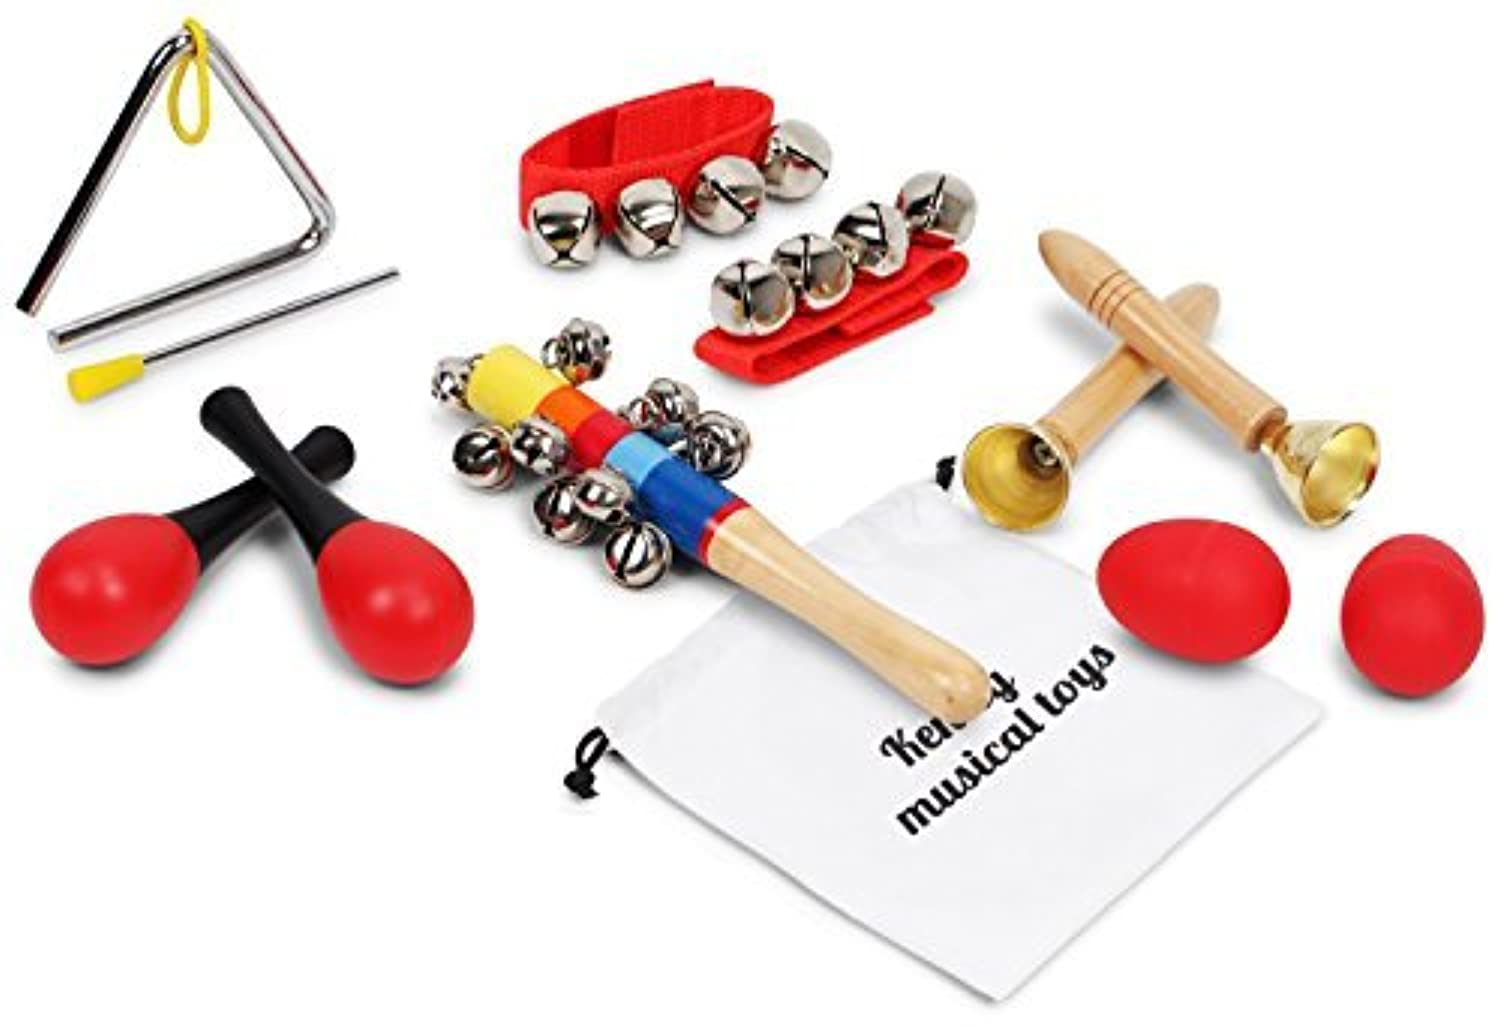 Kenley Musical Instruments for Kids - Percussion & Rhythm Maracas Band Play Music Toys for Baby Children & Toddlers - Set of 10 [並行輸入品]